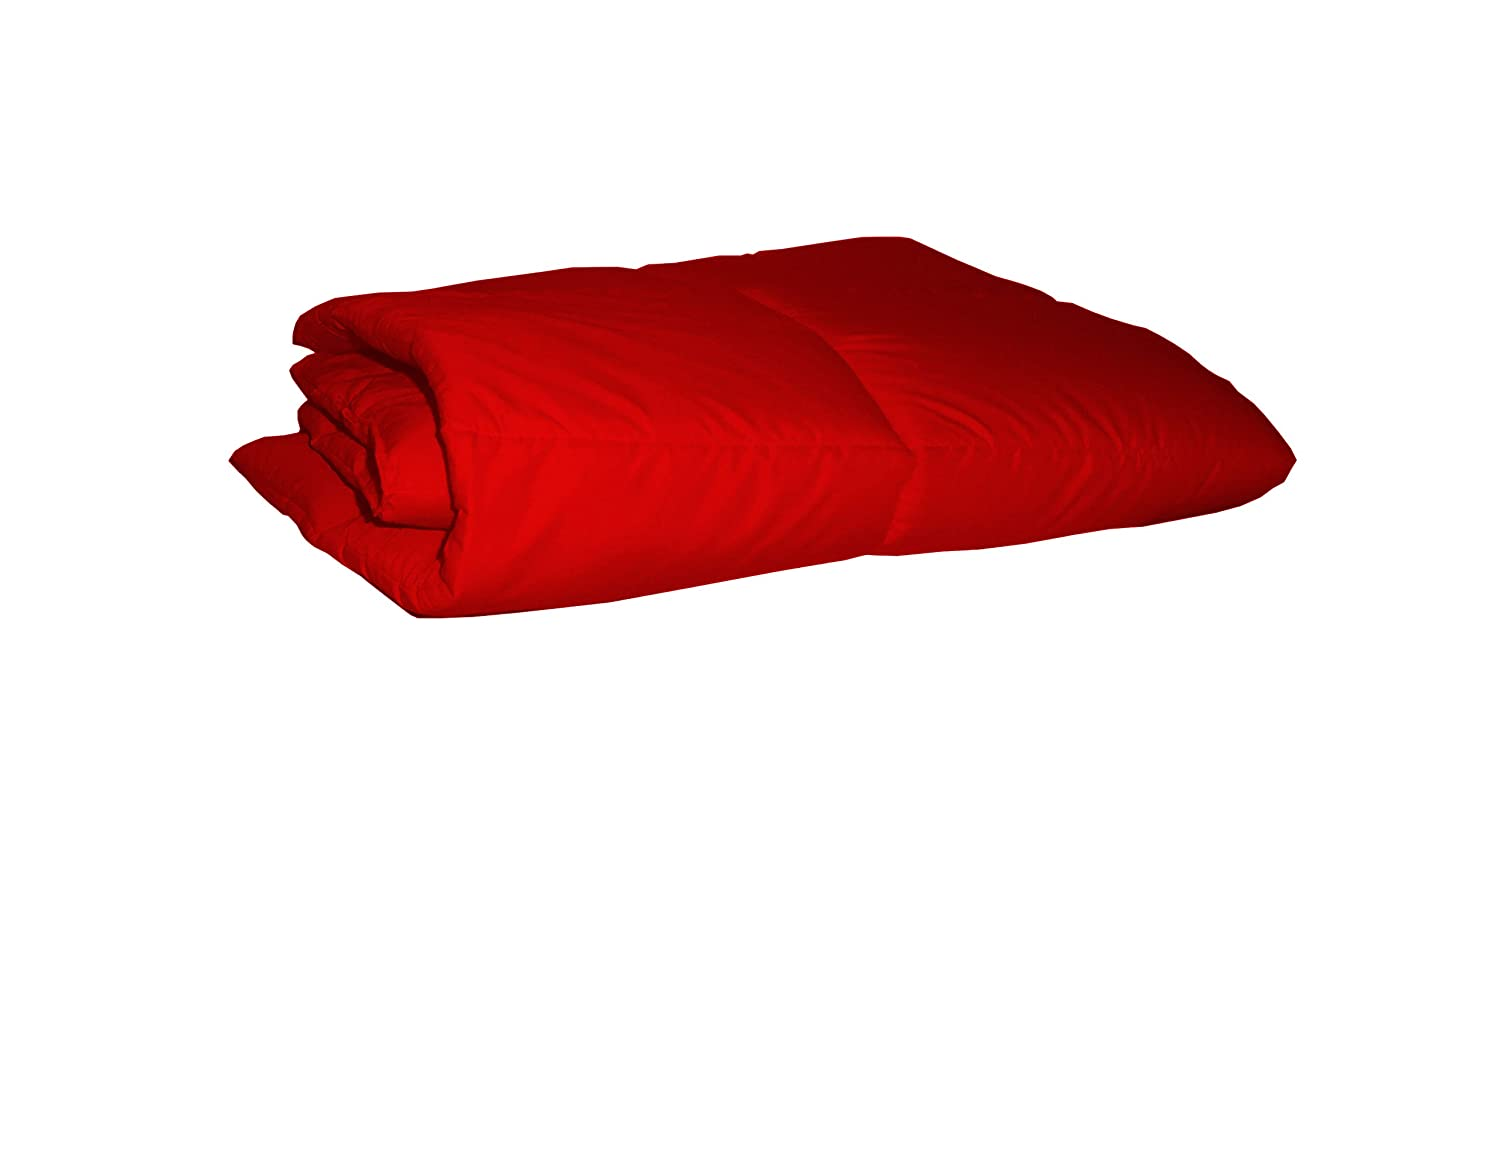 Baby Doll Bedding Baby and Toddler Comfy Comforter, Red 1000BTCOM-red